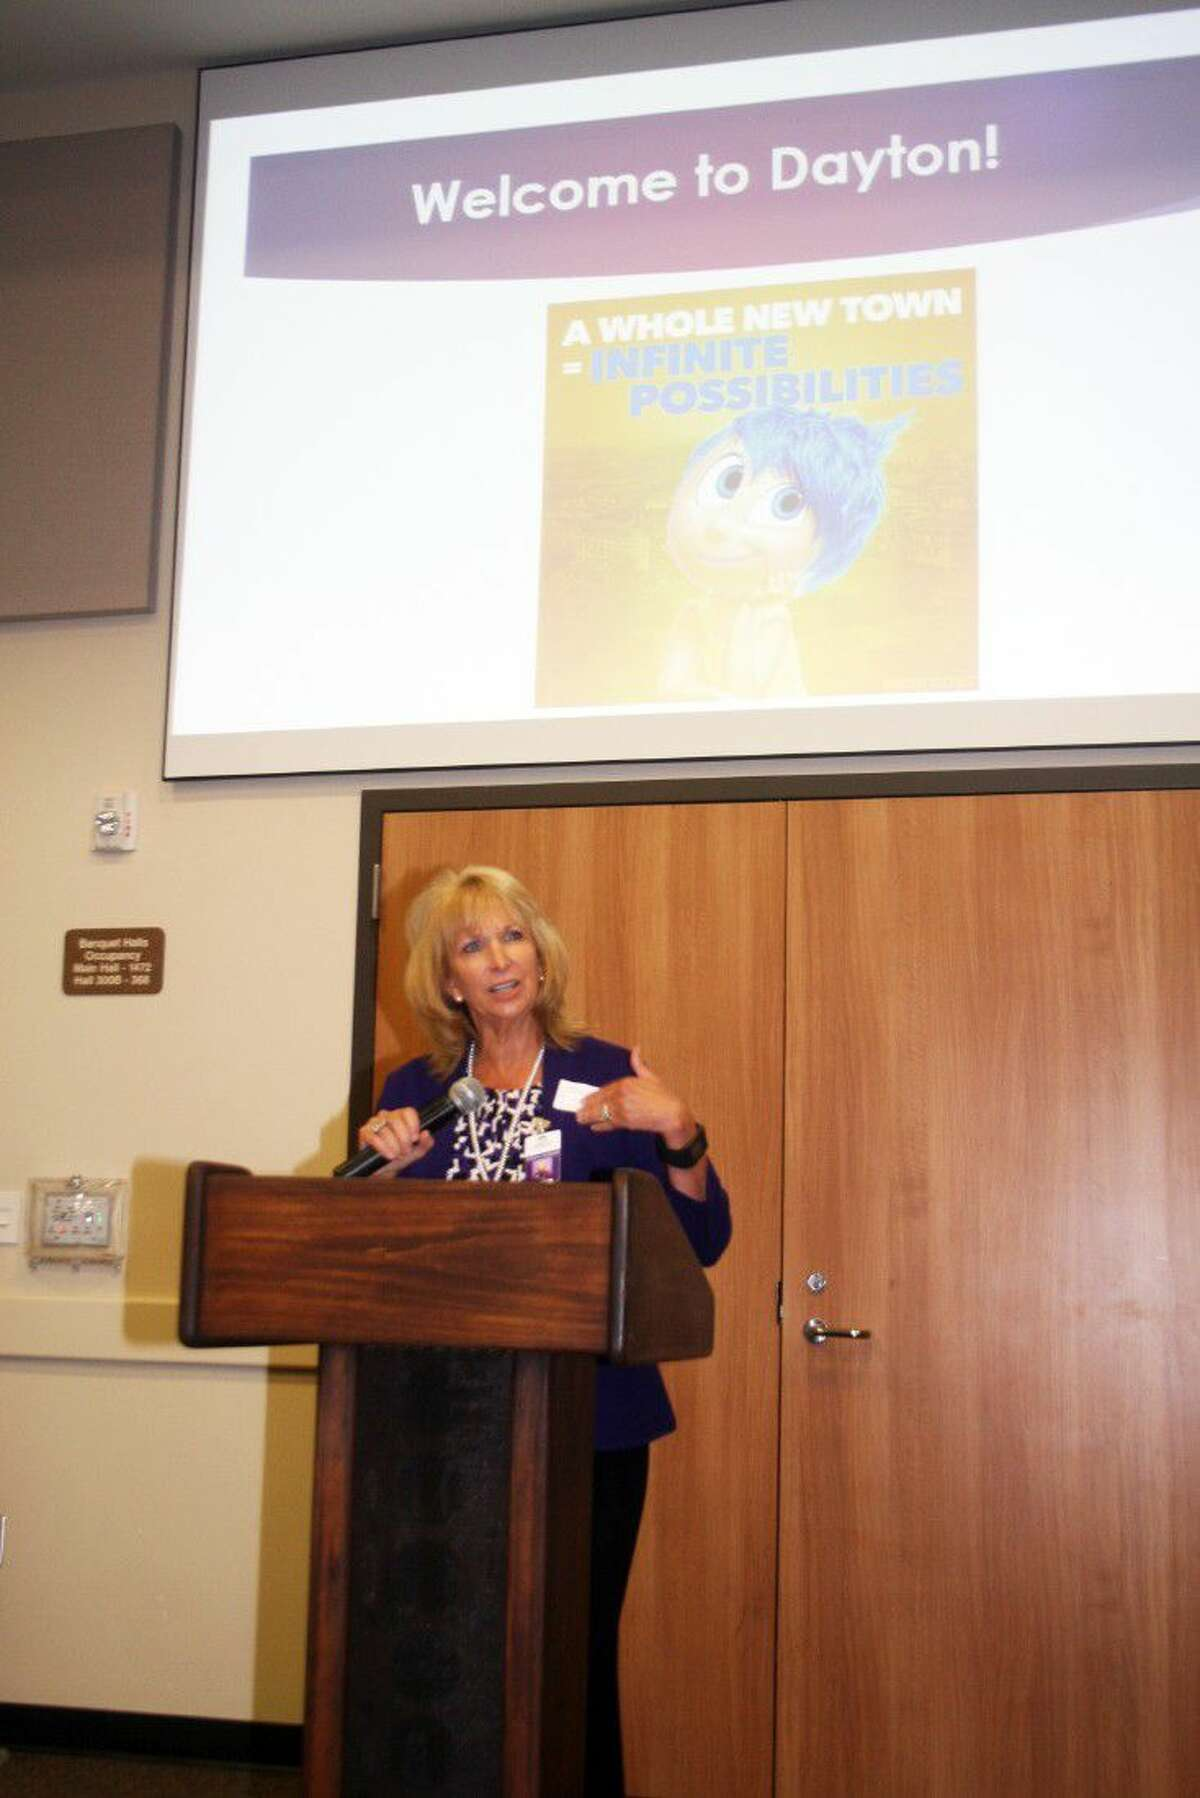 Superintendent Dr. Jessica Johnson used her alter ego, Disney character Joy, to tell the story of Dayton to a host of new teachers in Dayton ISD. The New Teachers' Luncheon was sponsored by the Dayton Chamber of Commerce.